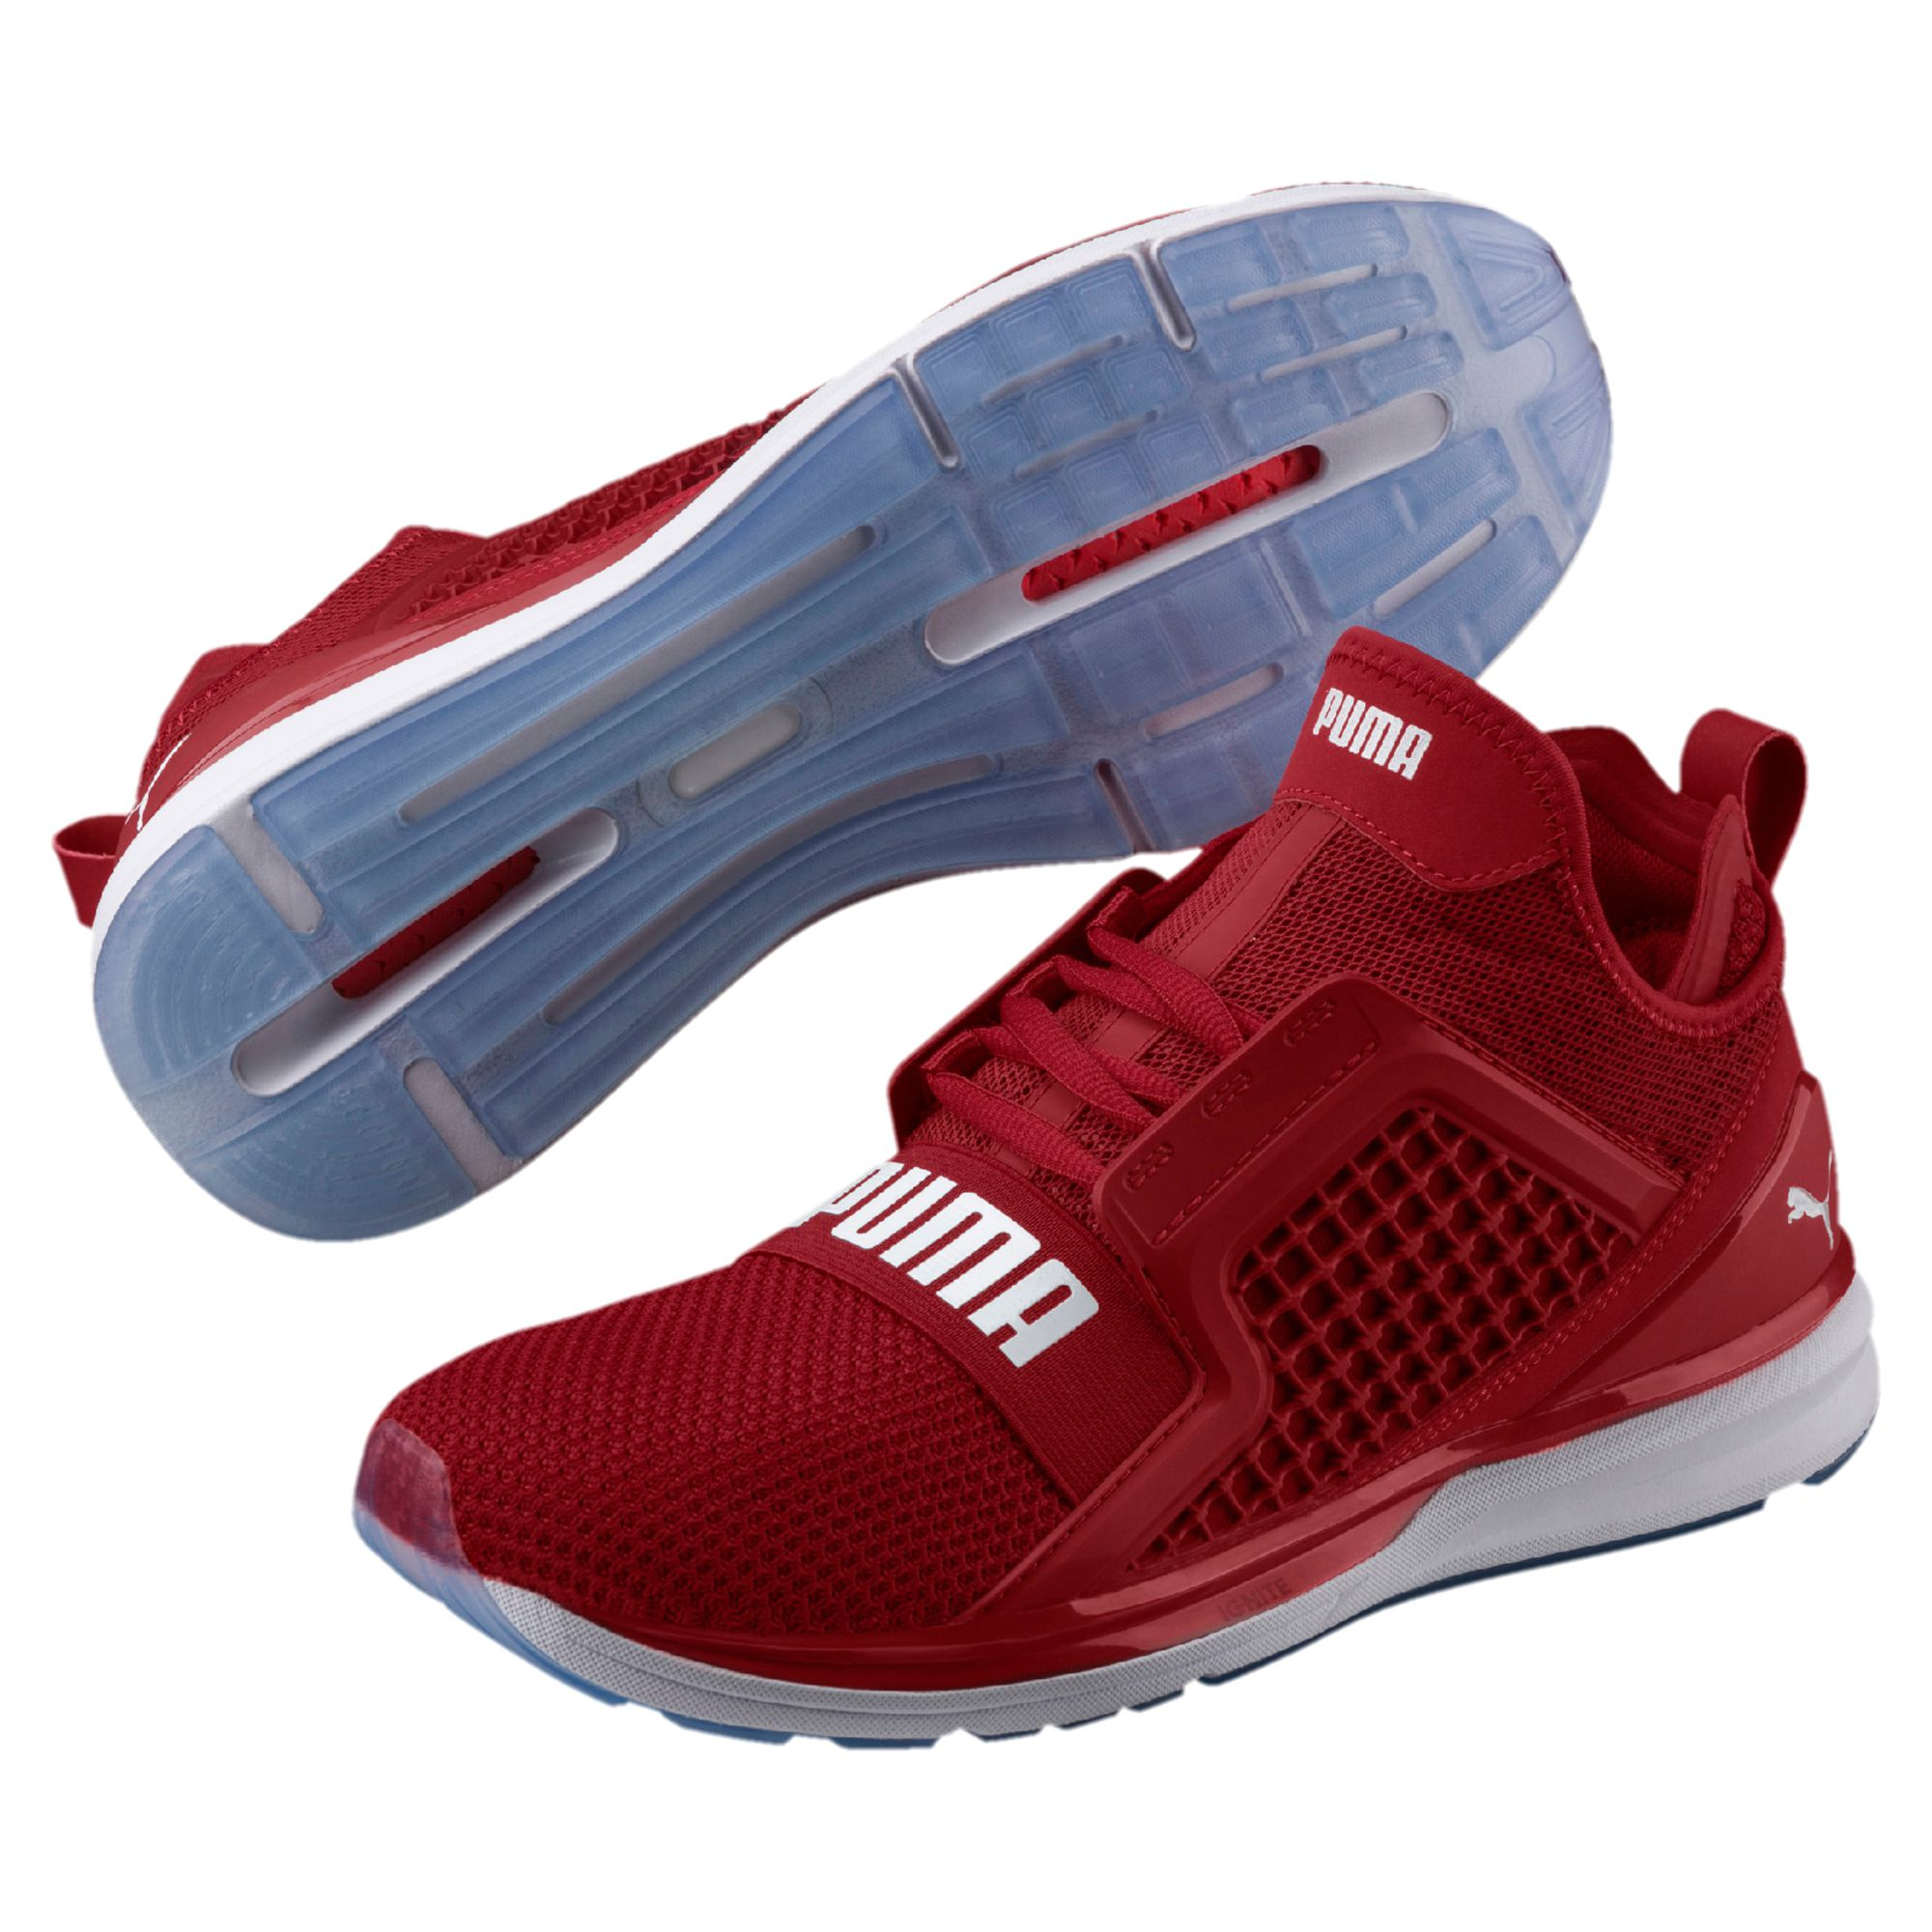 outlet store 54c2f c08ea Details about PUMA Ignite Limitless Weave Sneaker Men | Red (19050303)